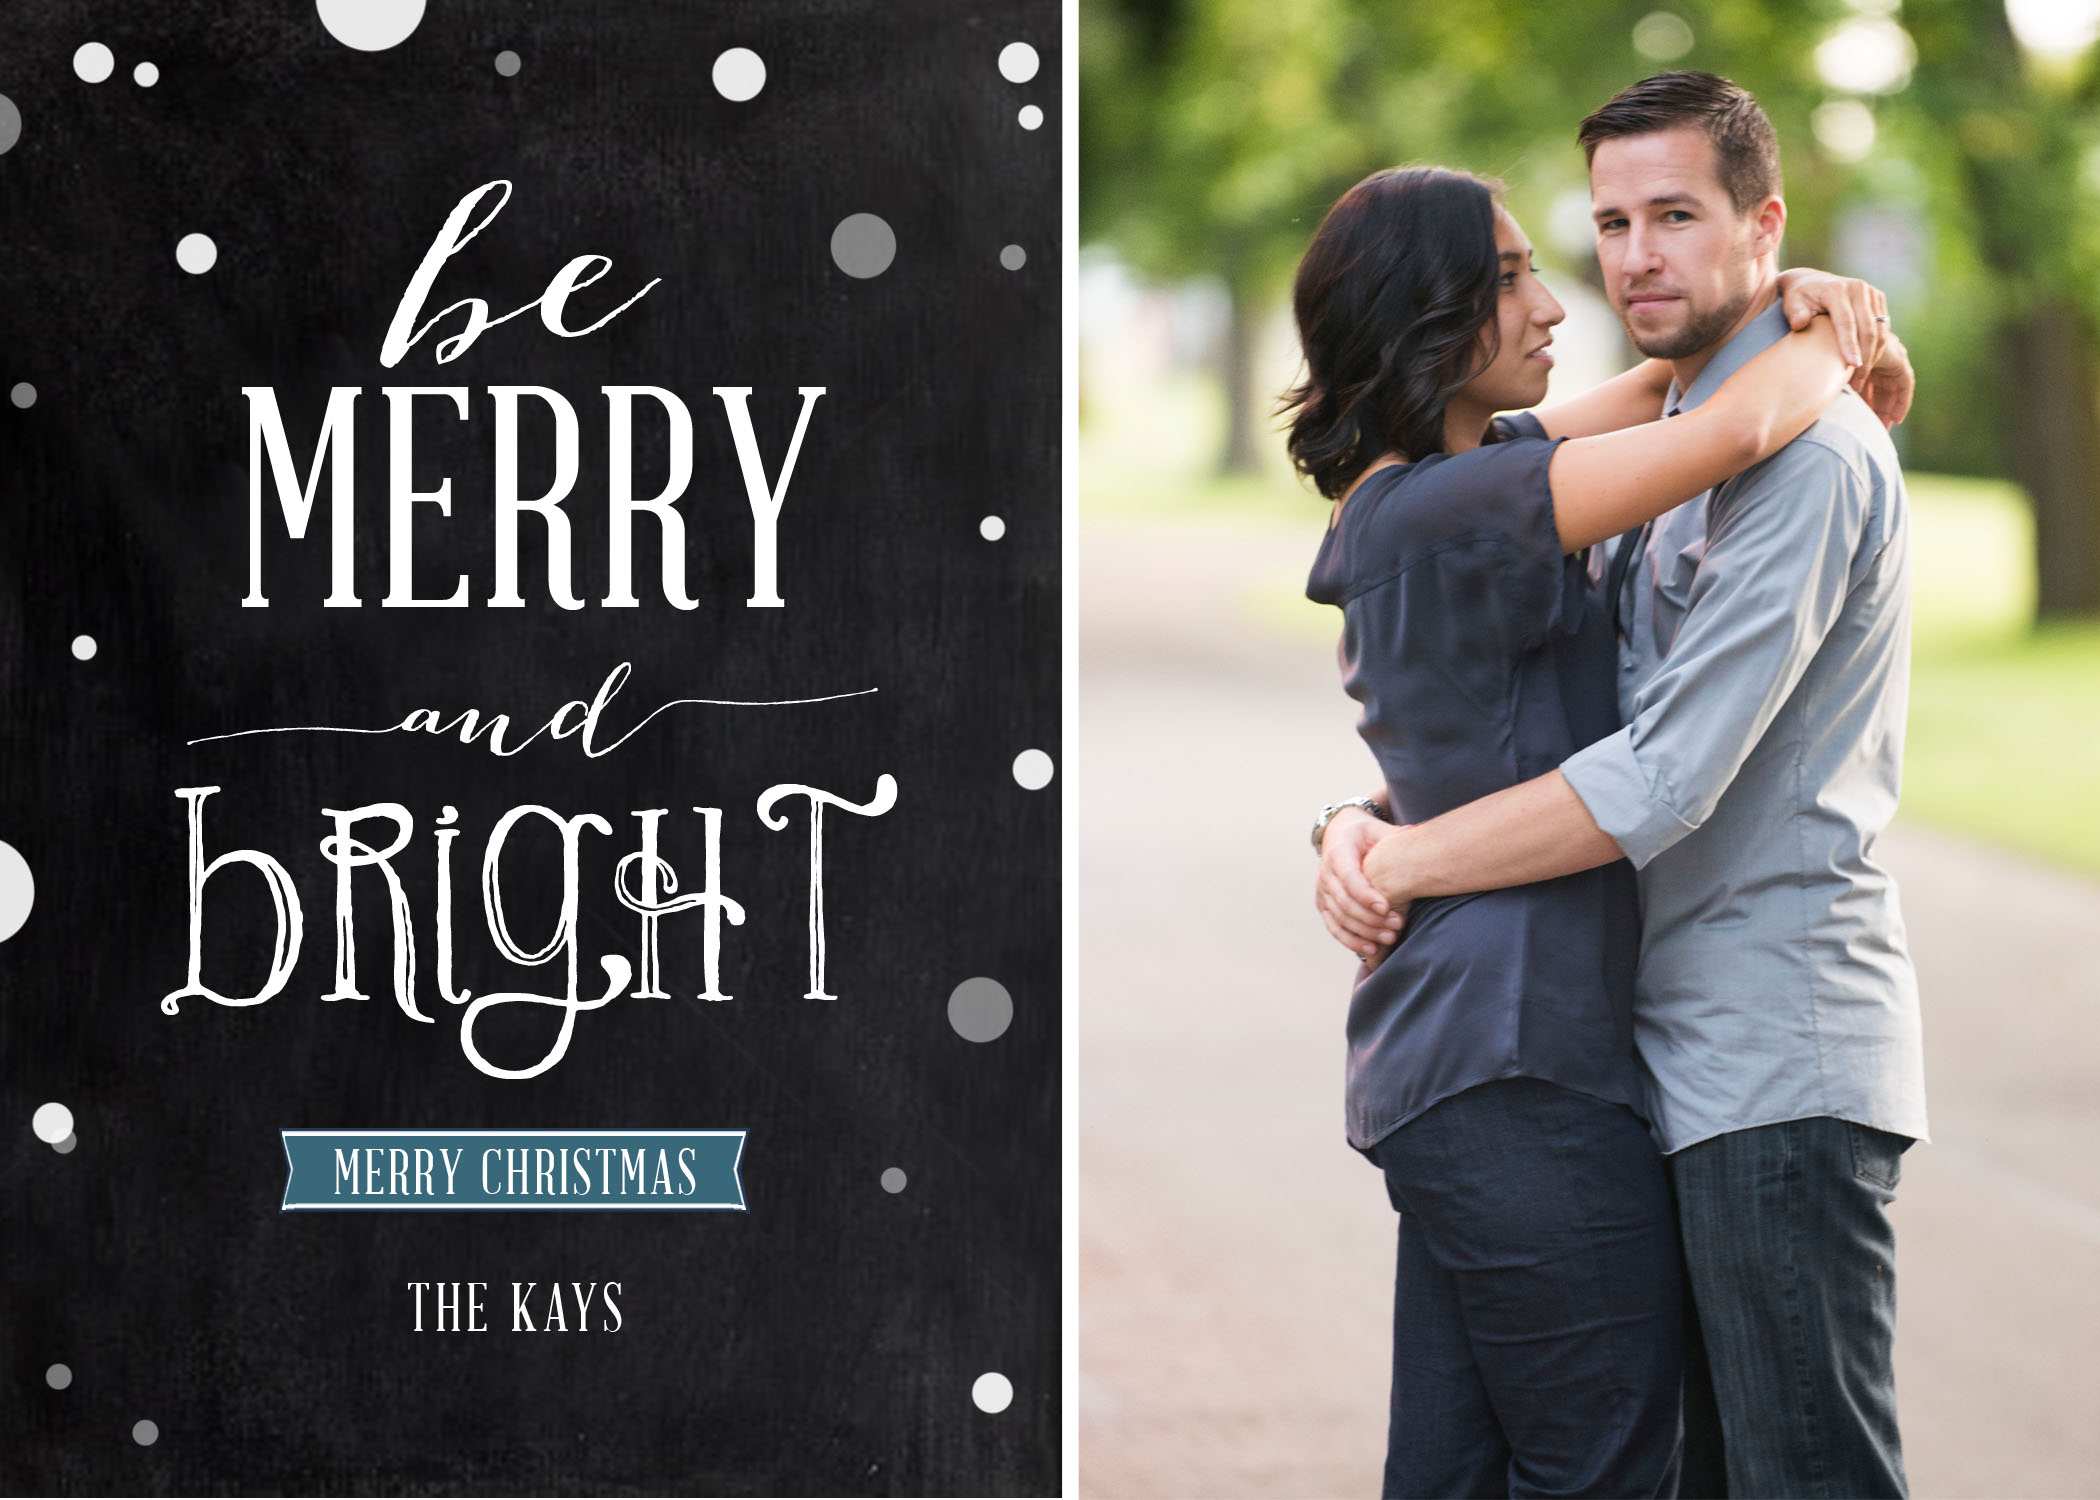 Be Merry and Bright - Christmas 2013